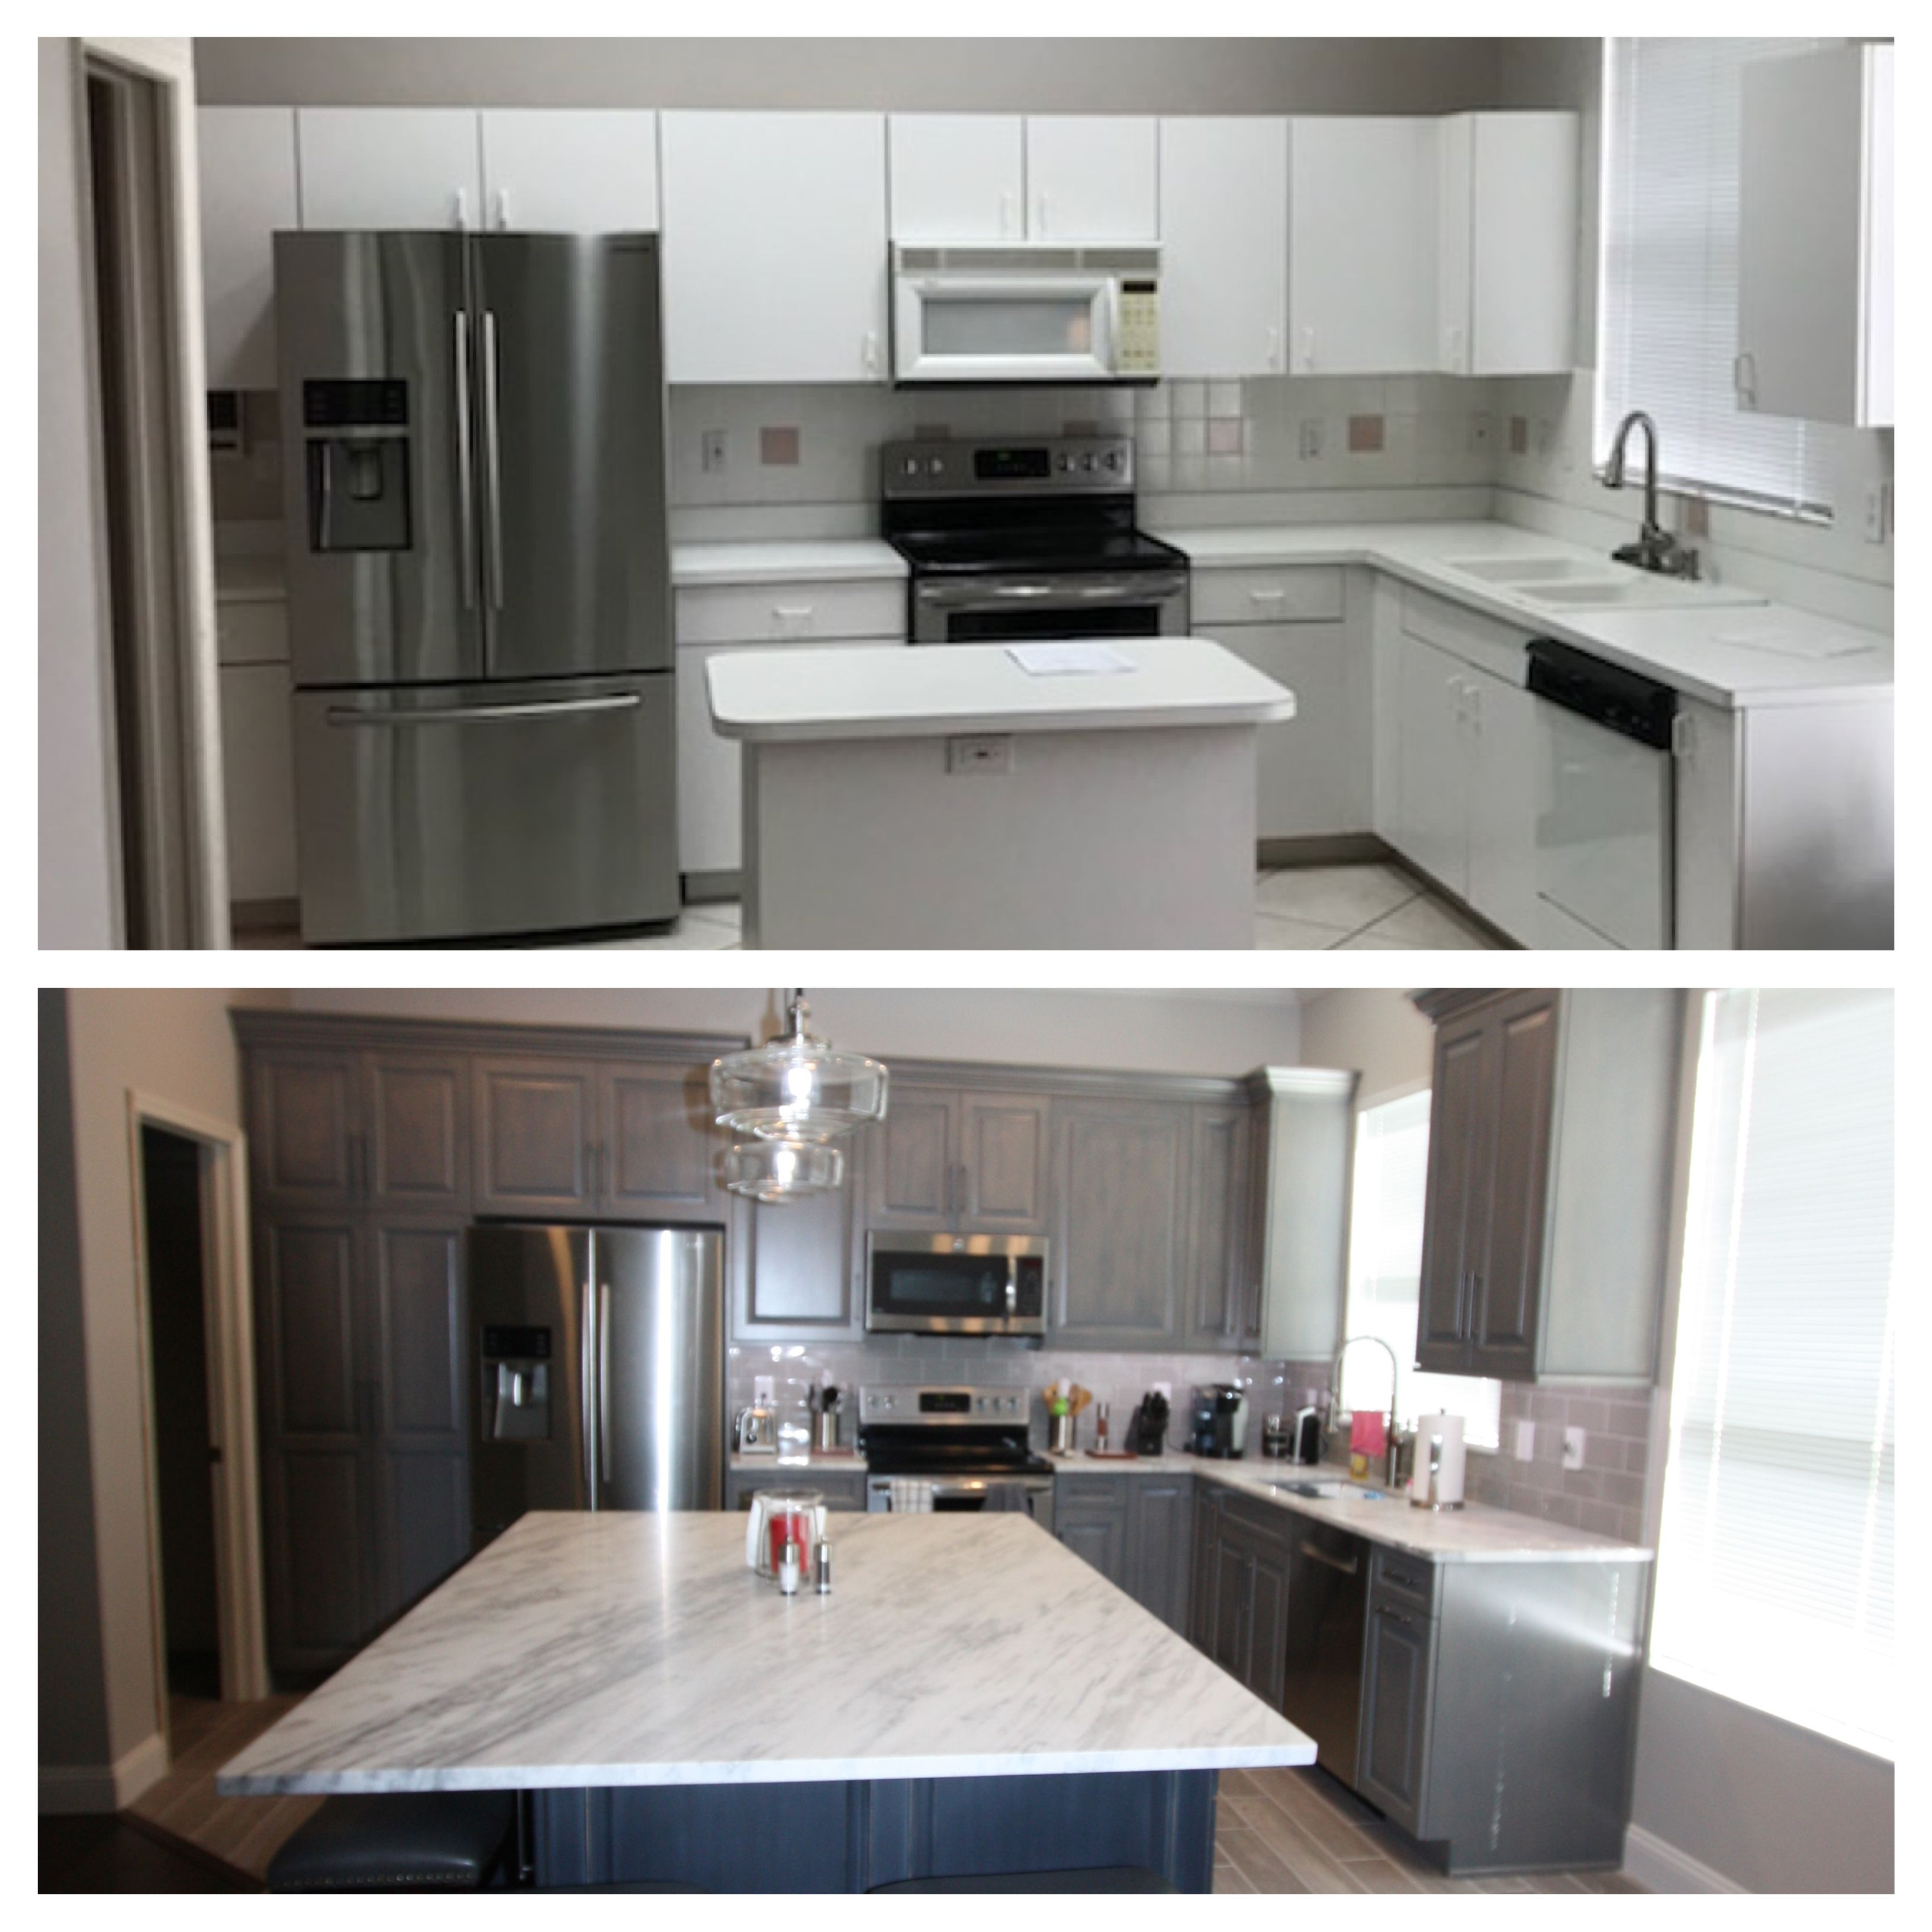 Kitchen And Bathroom Remodeling Contractors: Kitchen Remodel For Our Client Located In Palm Harbor. We